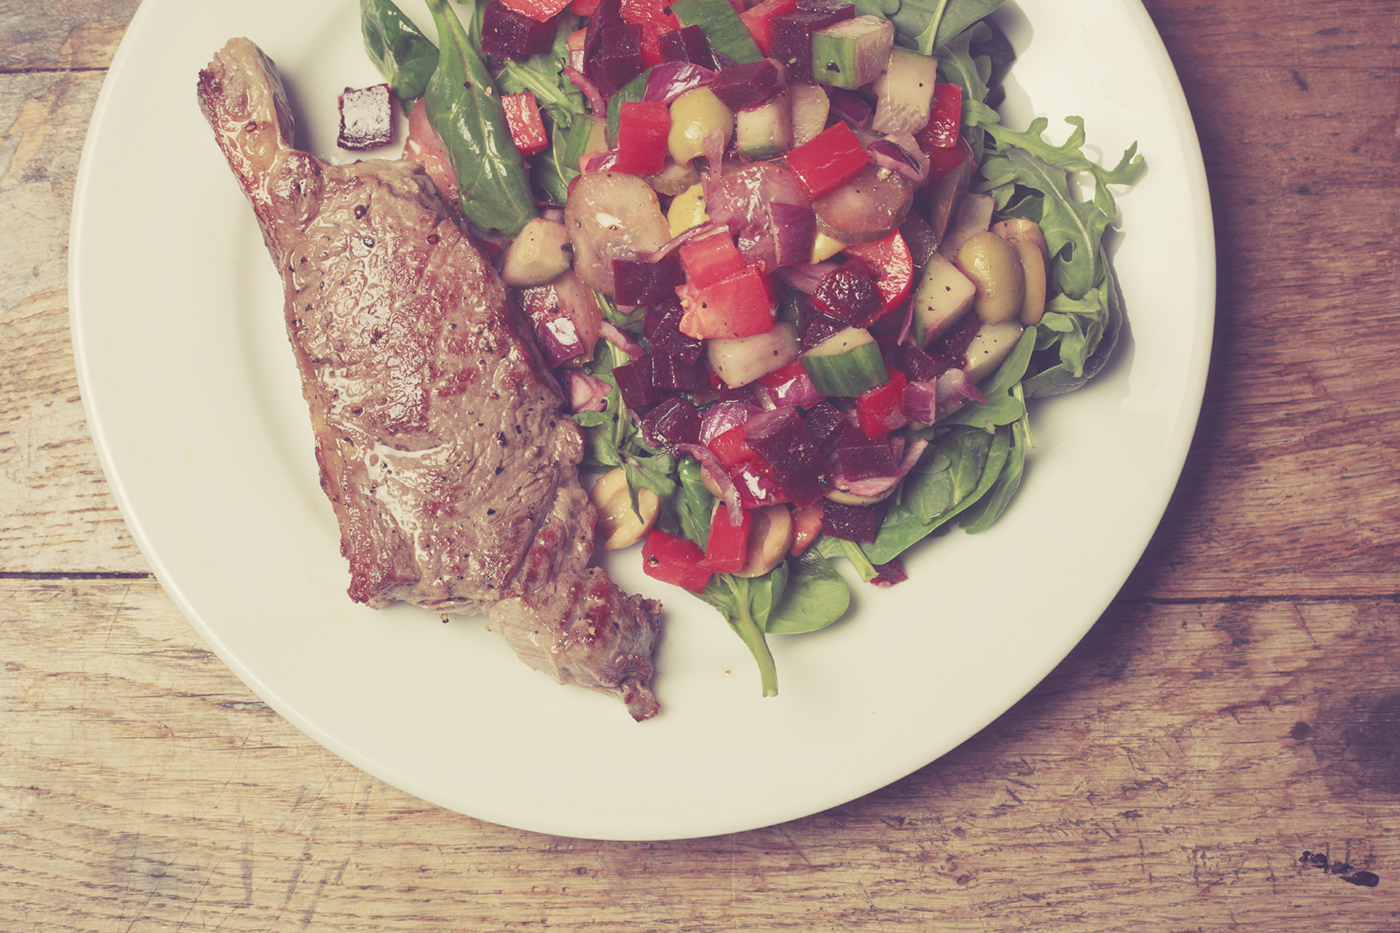 It's one of the most misunderstood and dismissed diets around… And not because it doesn't work. A paleo style diet may help you claim your health independence.